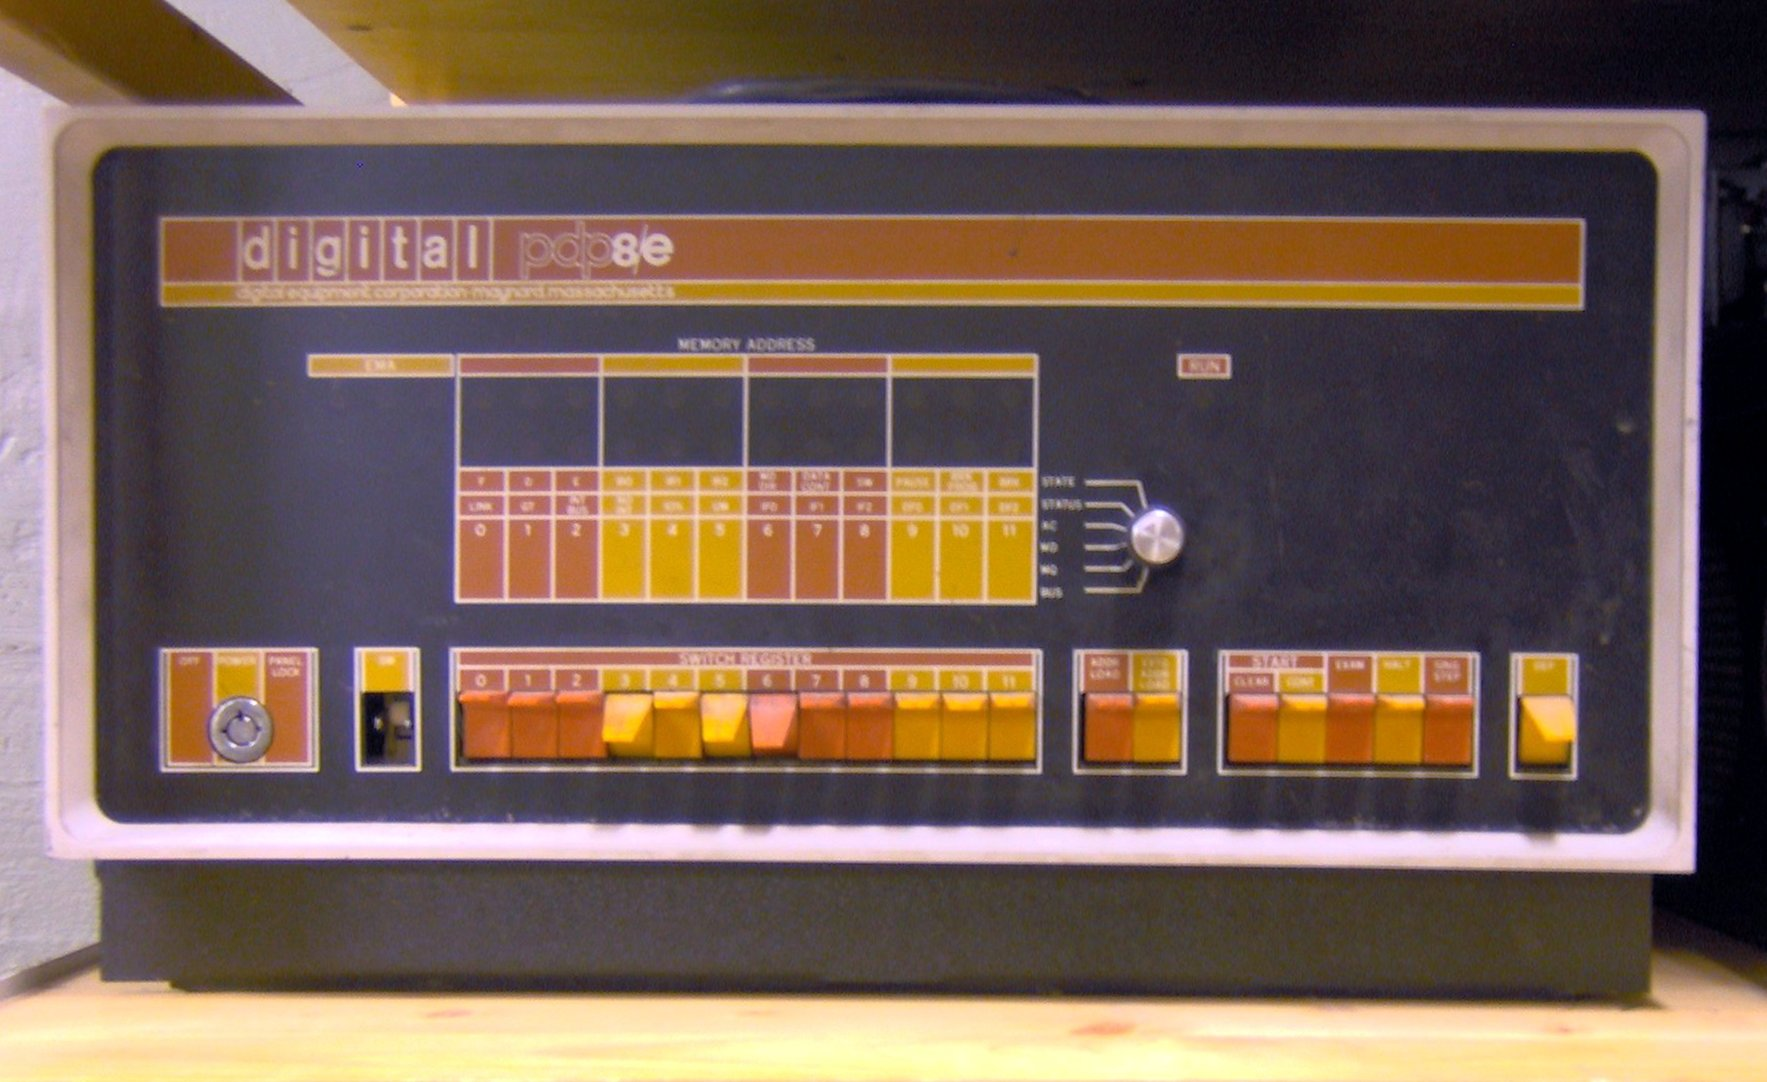 PDP-8/E front panel showing the switches used to load the bootstrap